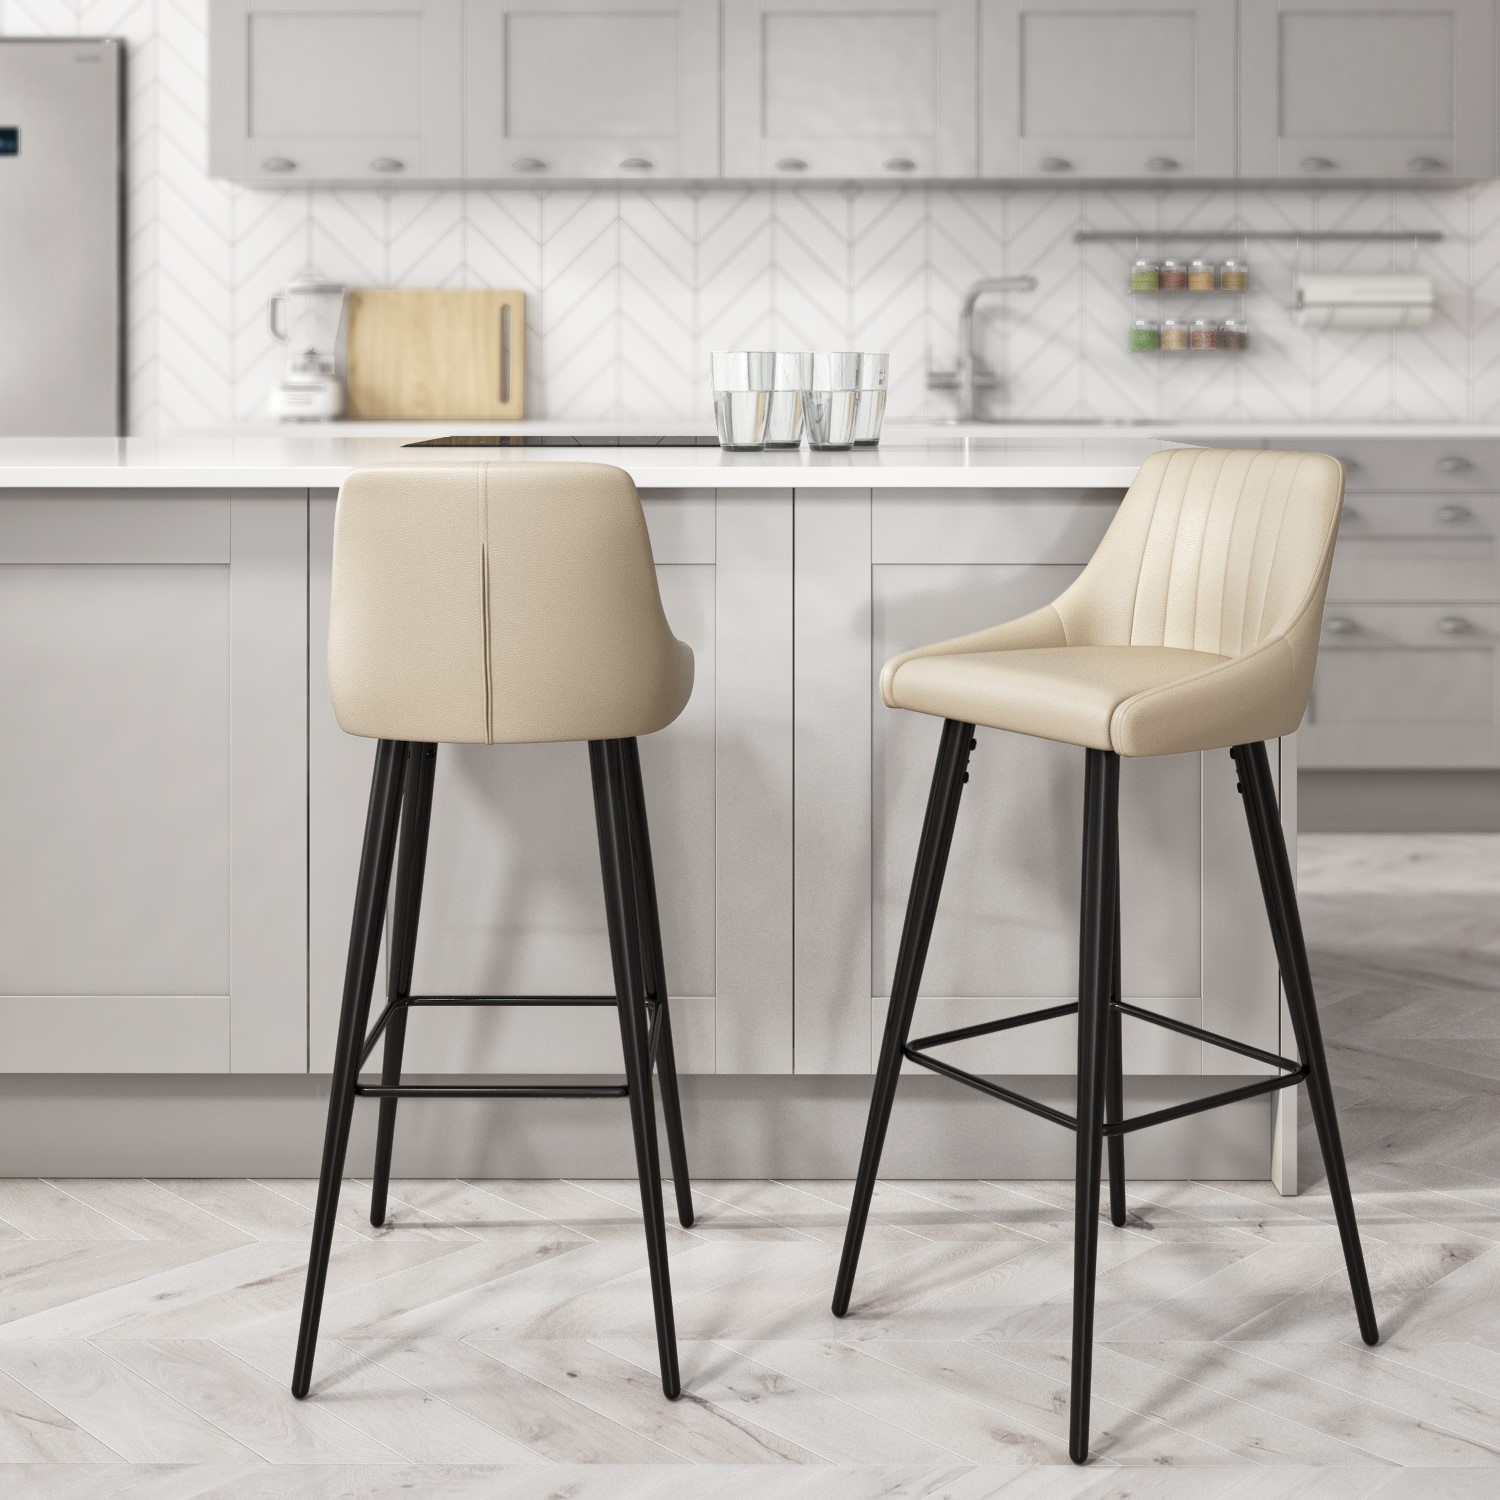 Cream Faux Leather Bar Stool with Back   9cm   Macie